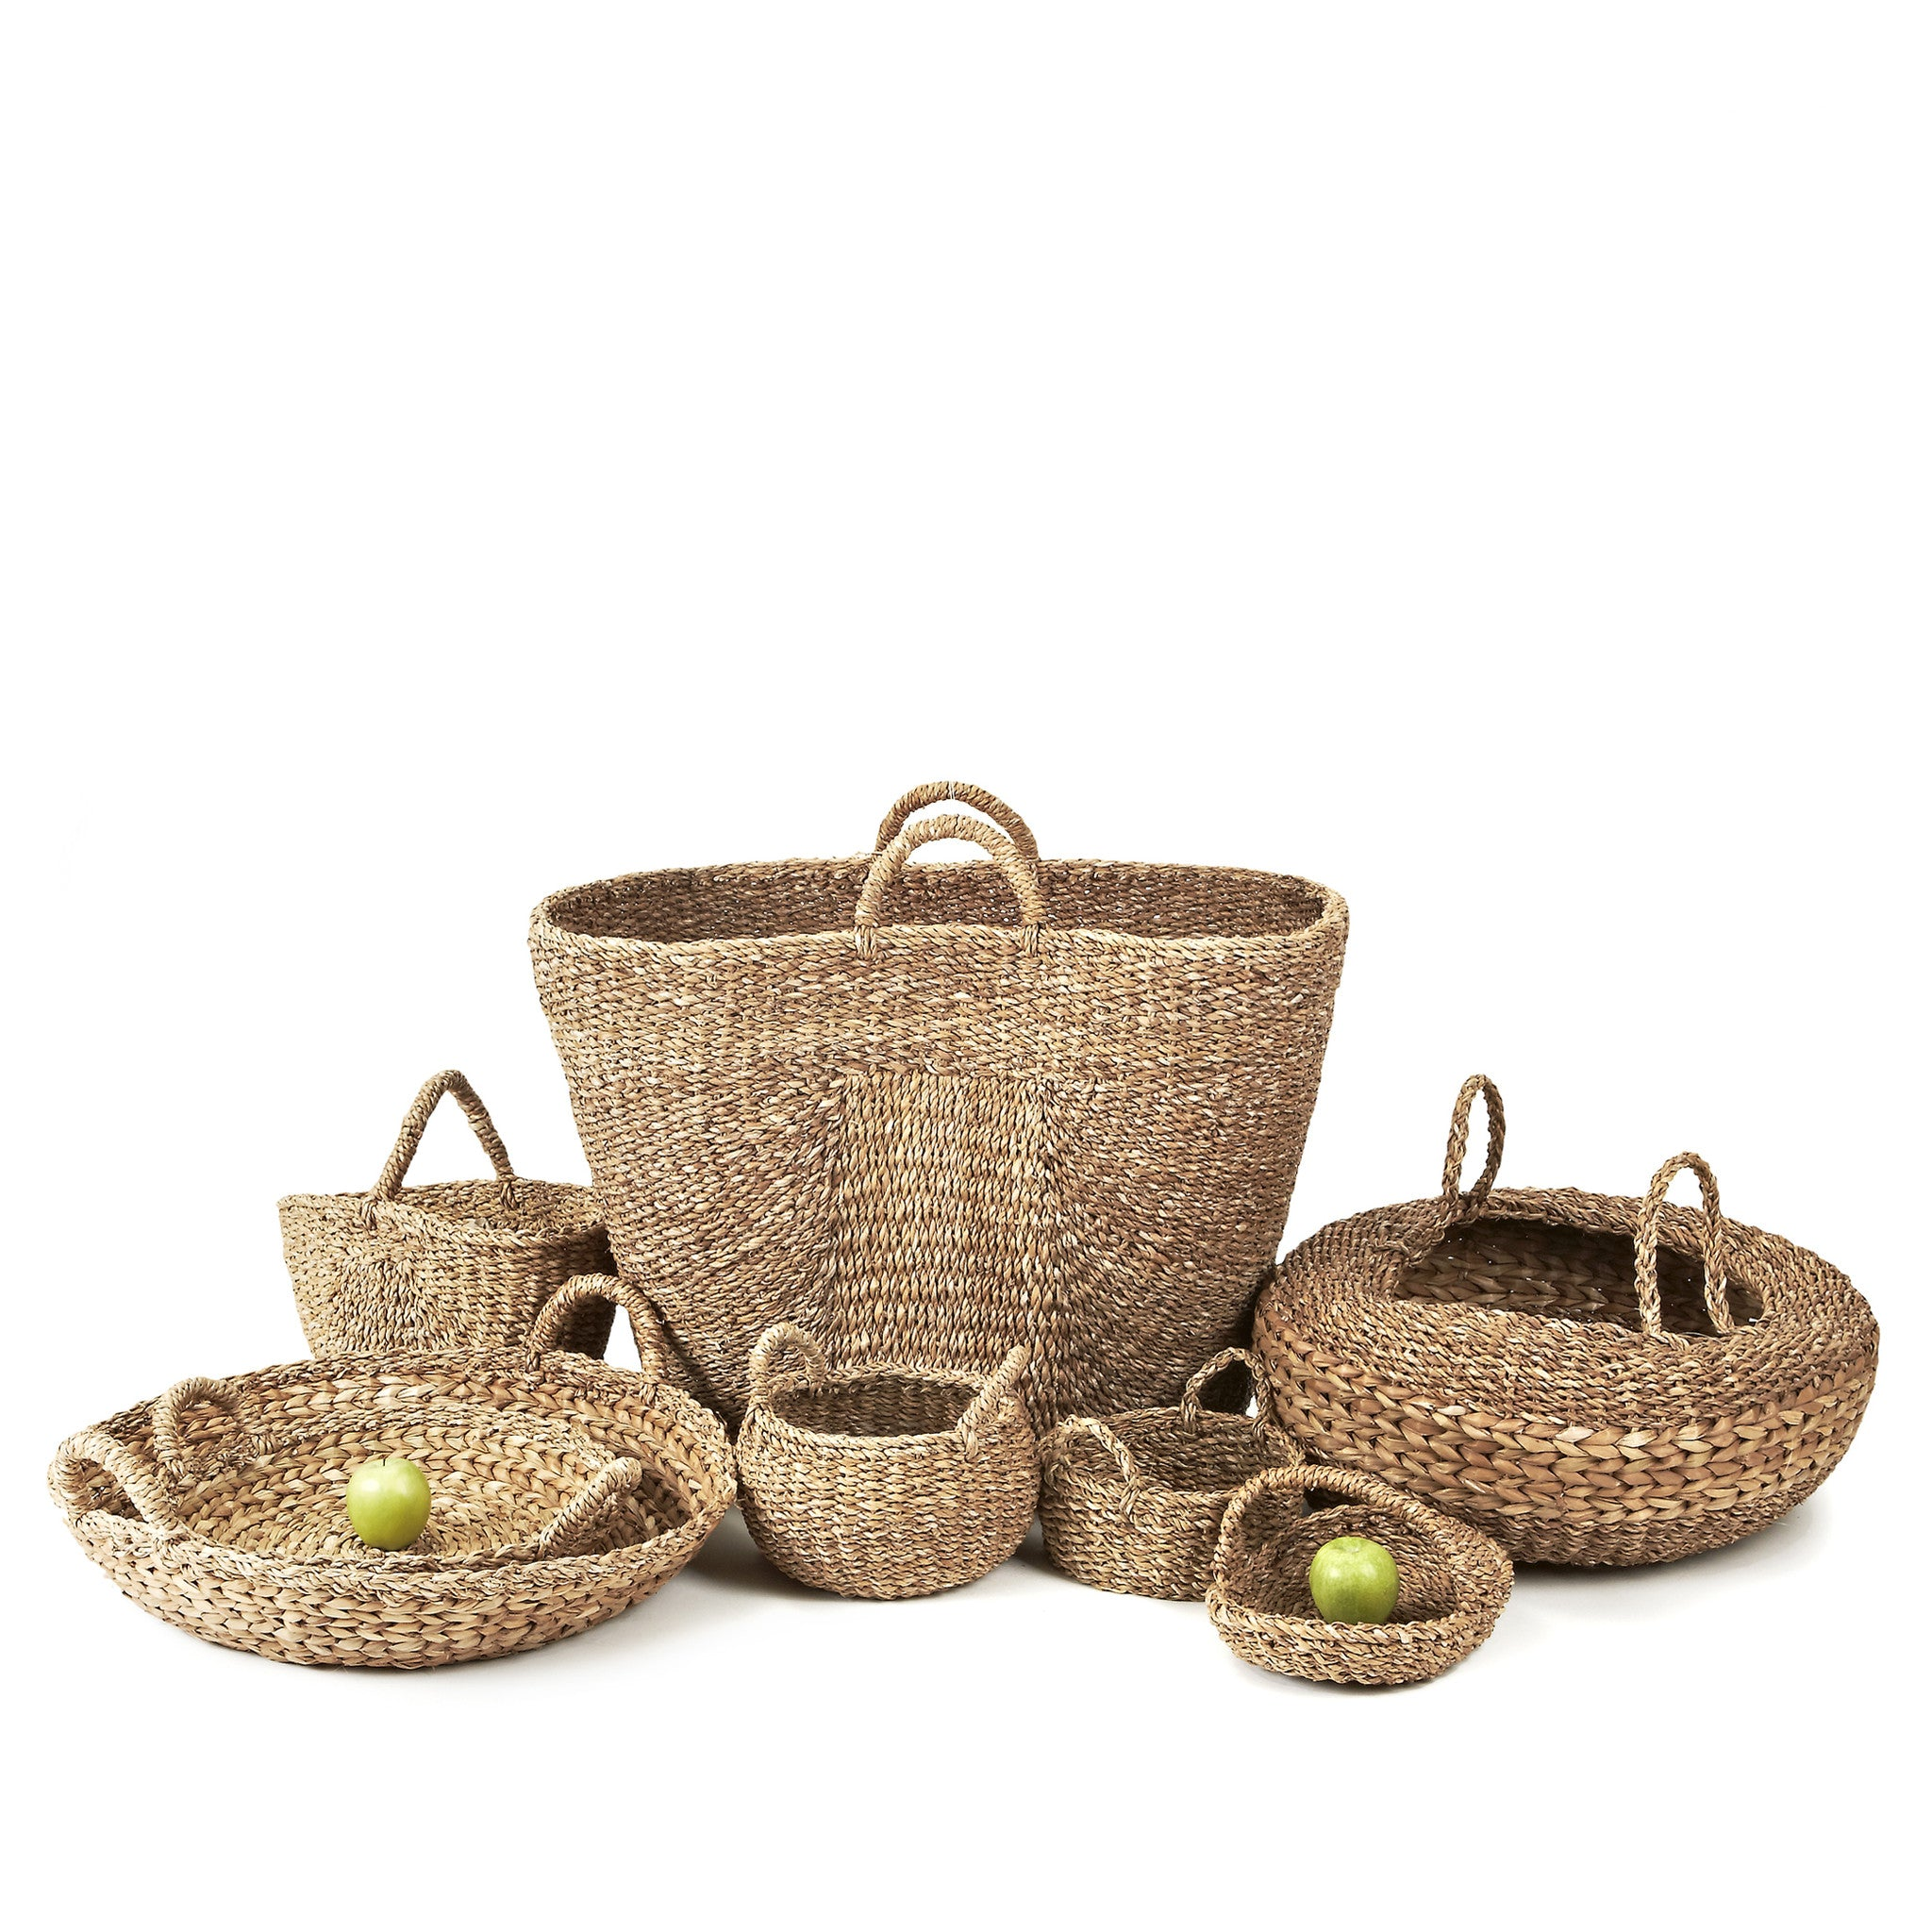 Hogla Small Round Egg Basket